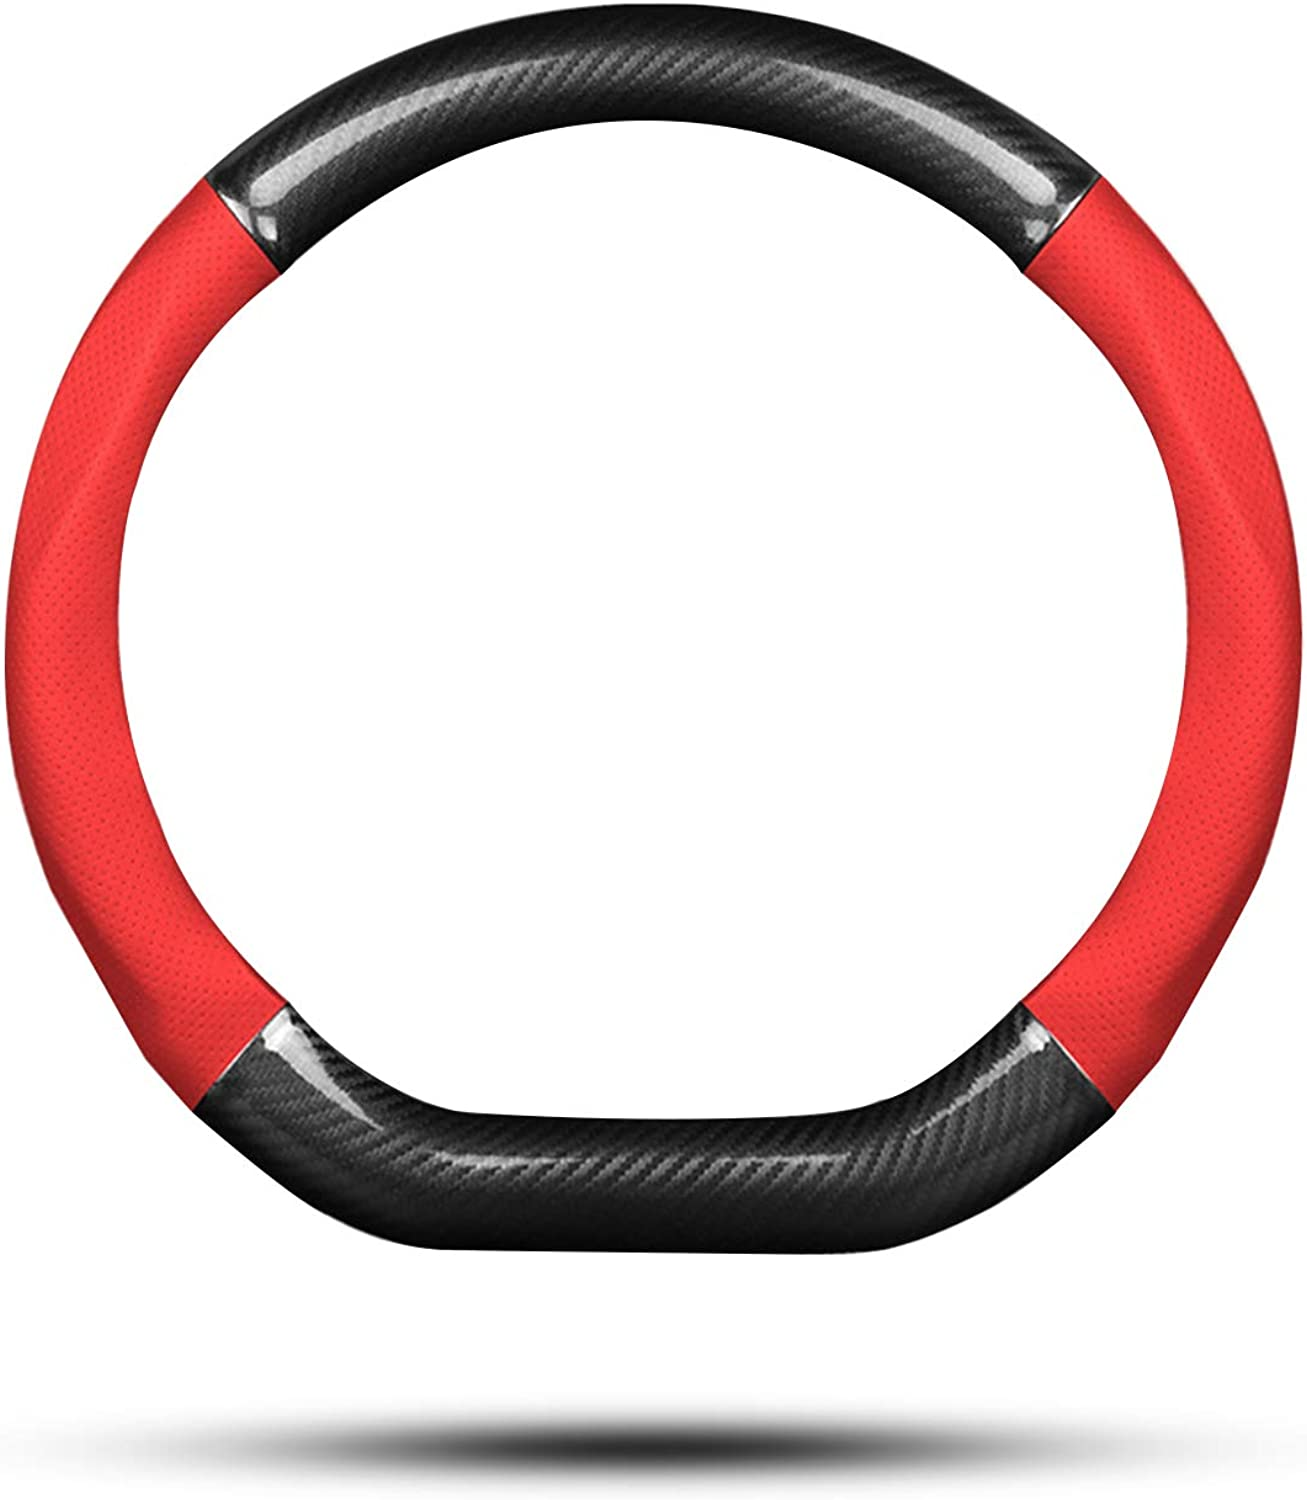 Ergocar Car Steering Wheel Cover Pro Non-Slip Max Today's only 84% OFF